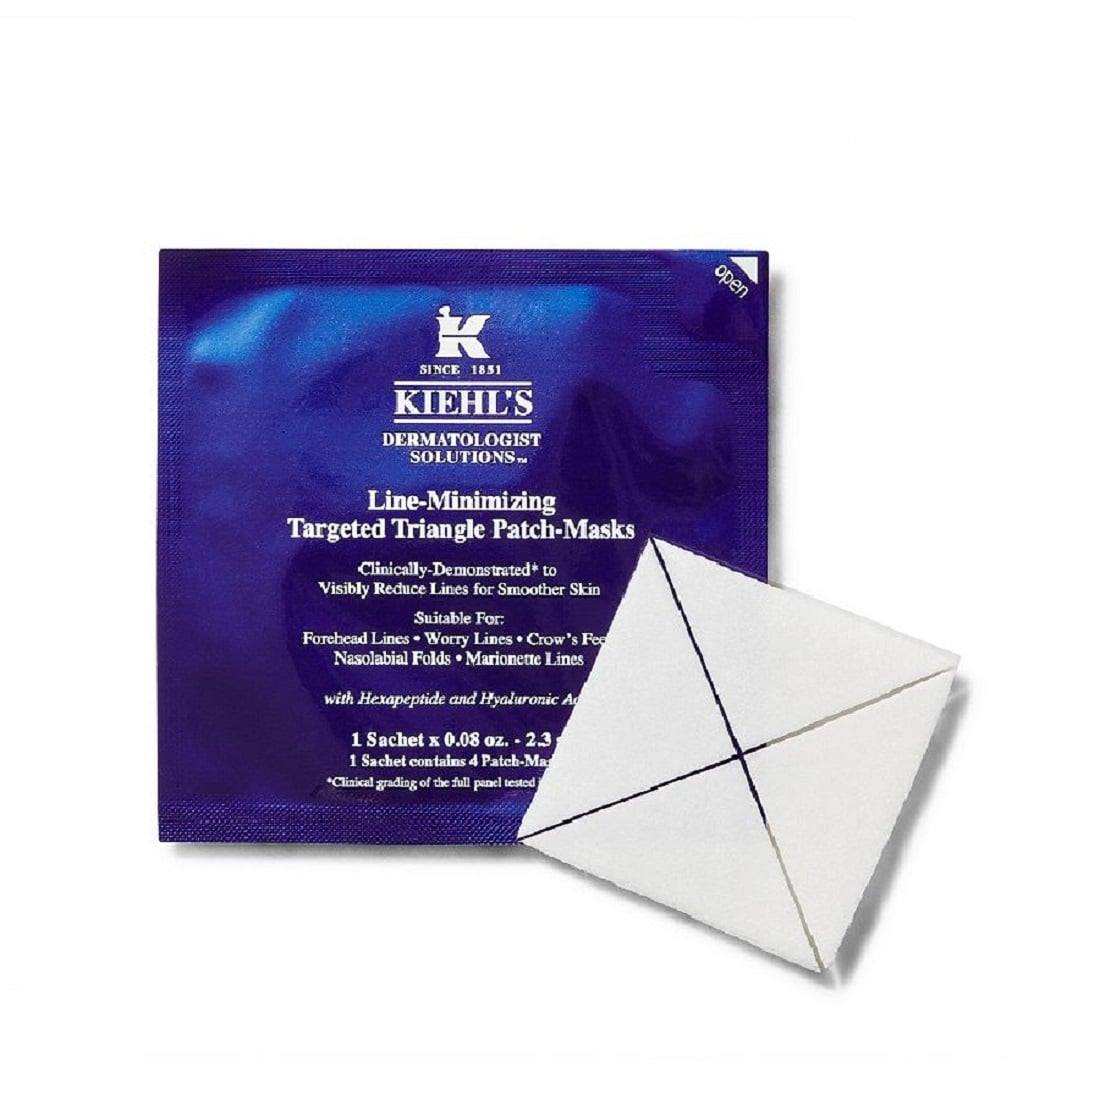 Kiehl's Line-Minimizing Targeted Triangle Patch